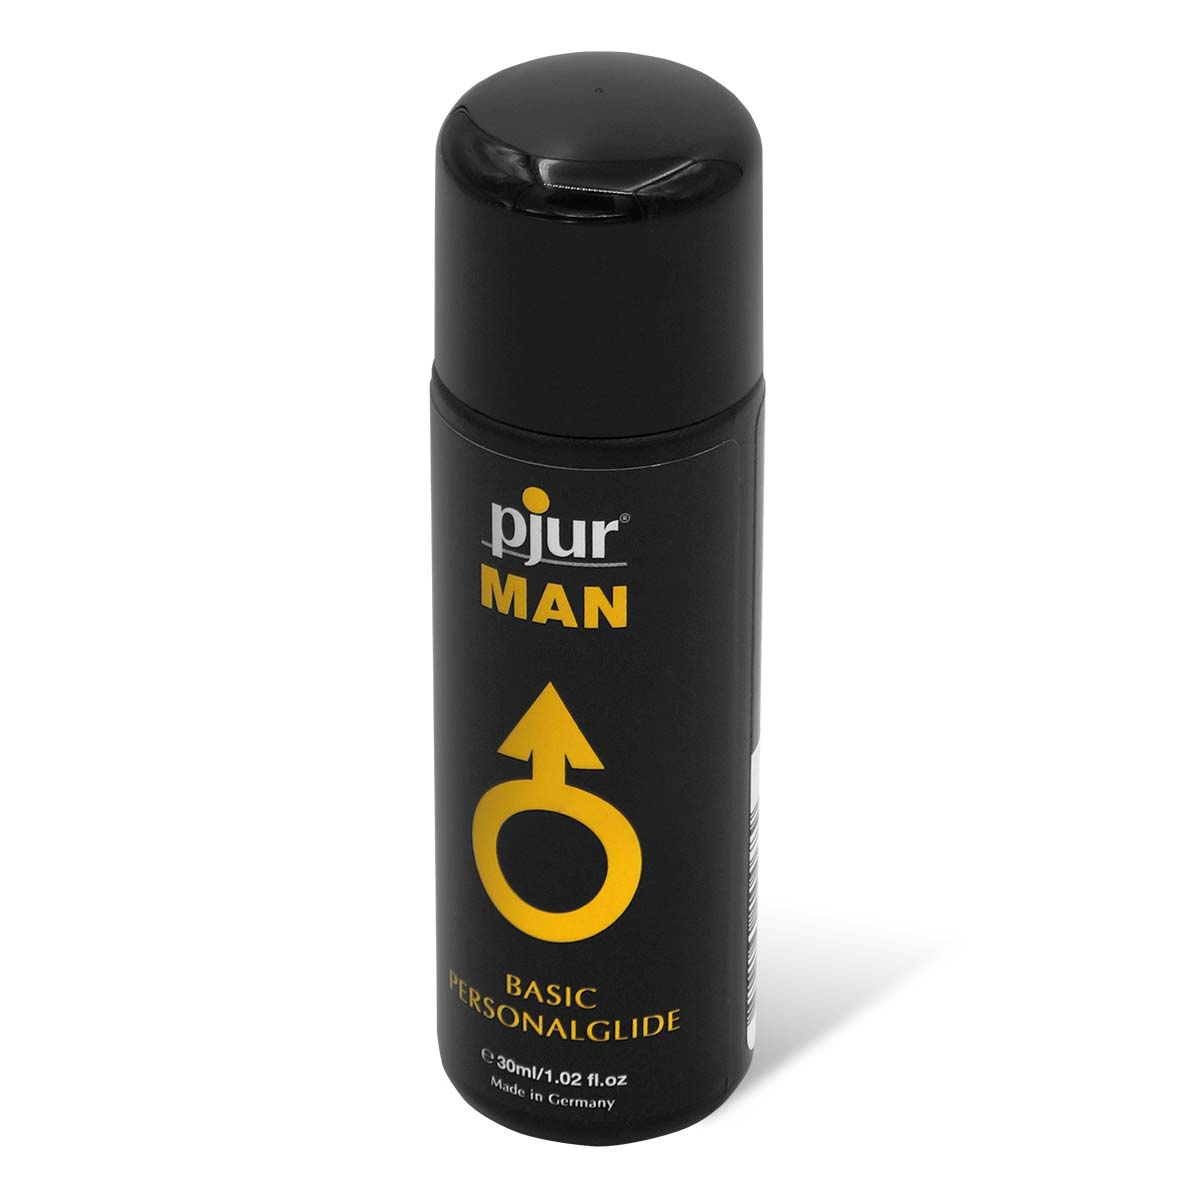 pjur MAN BASIC PERSONALGLIDE 30ml Silicone-based Lubricant